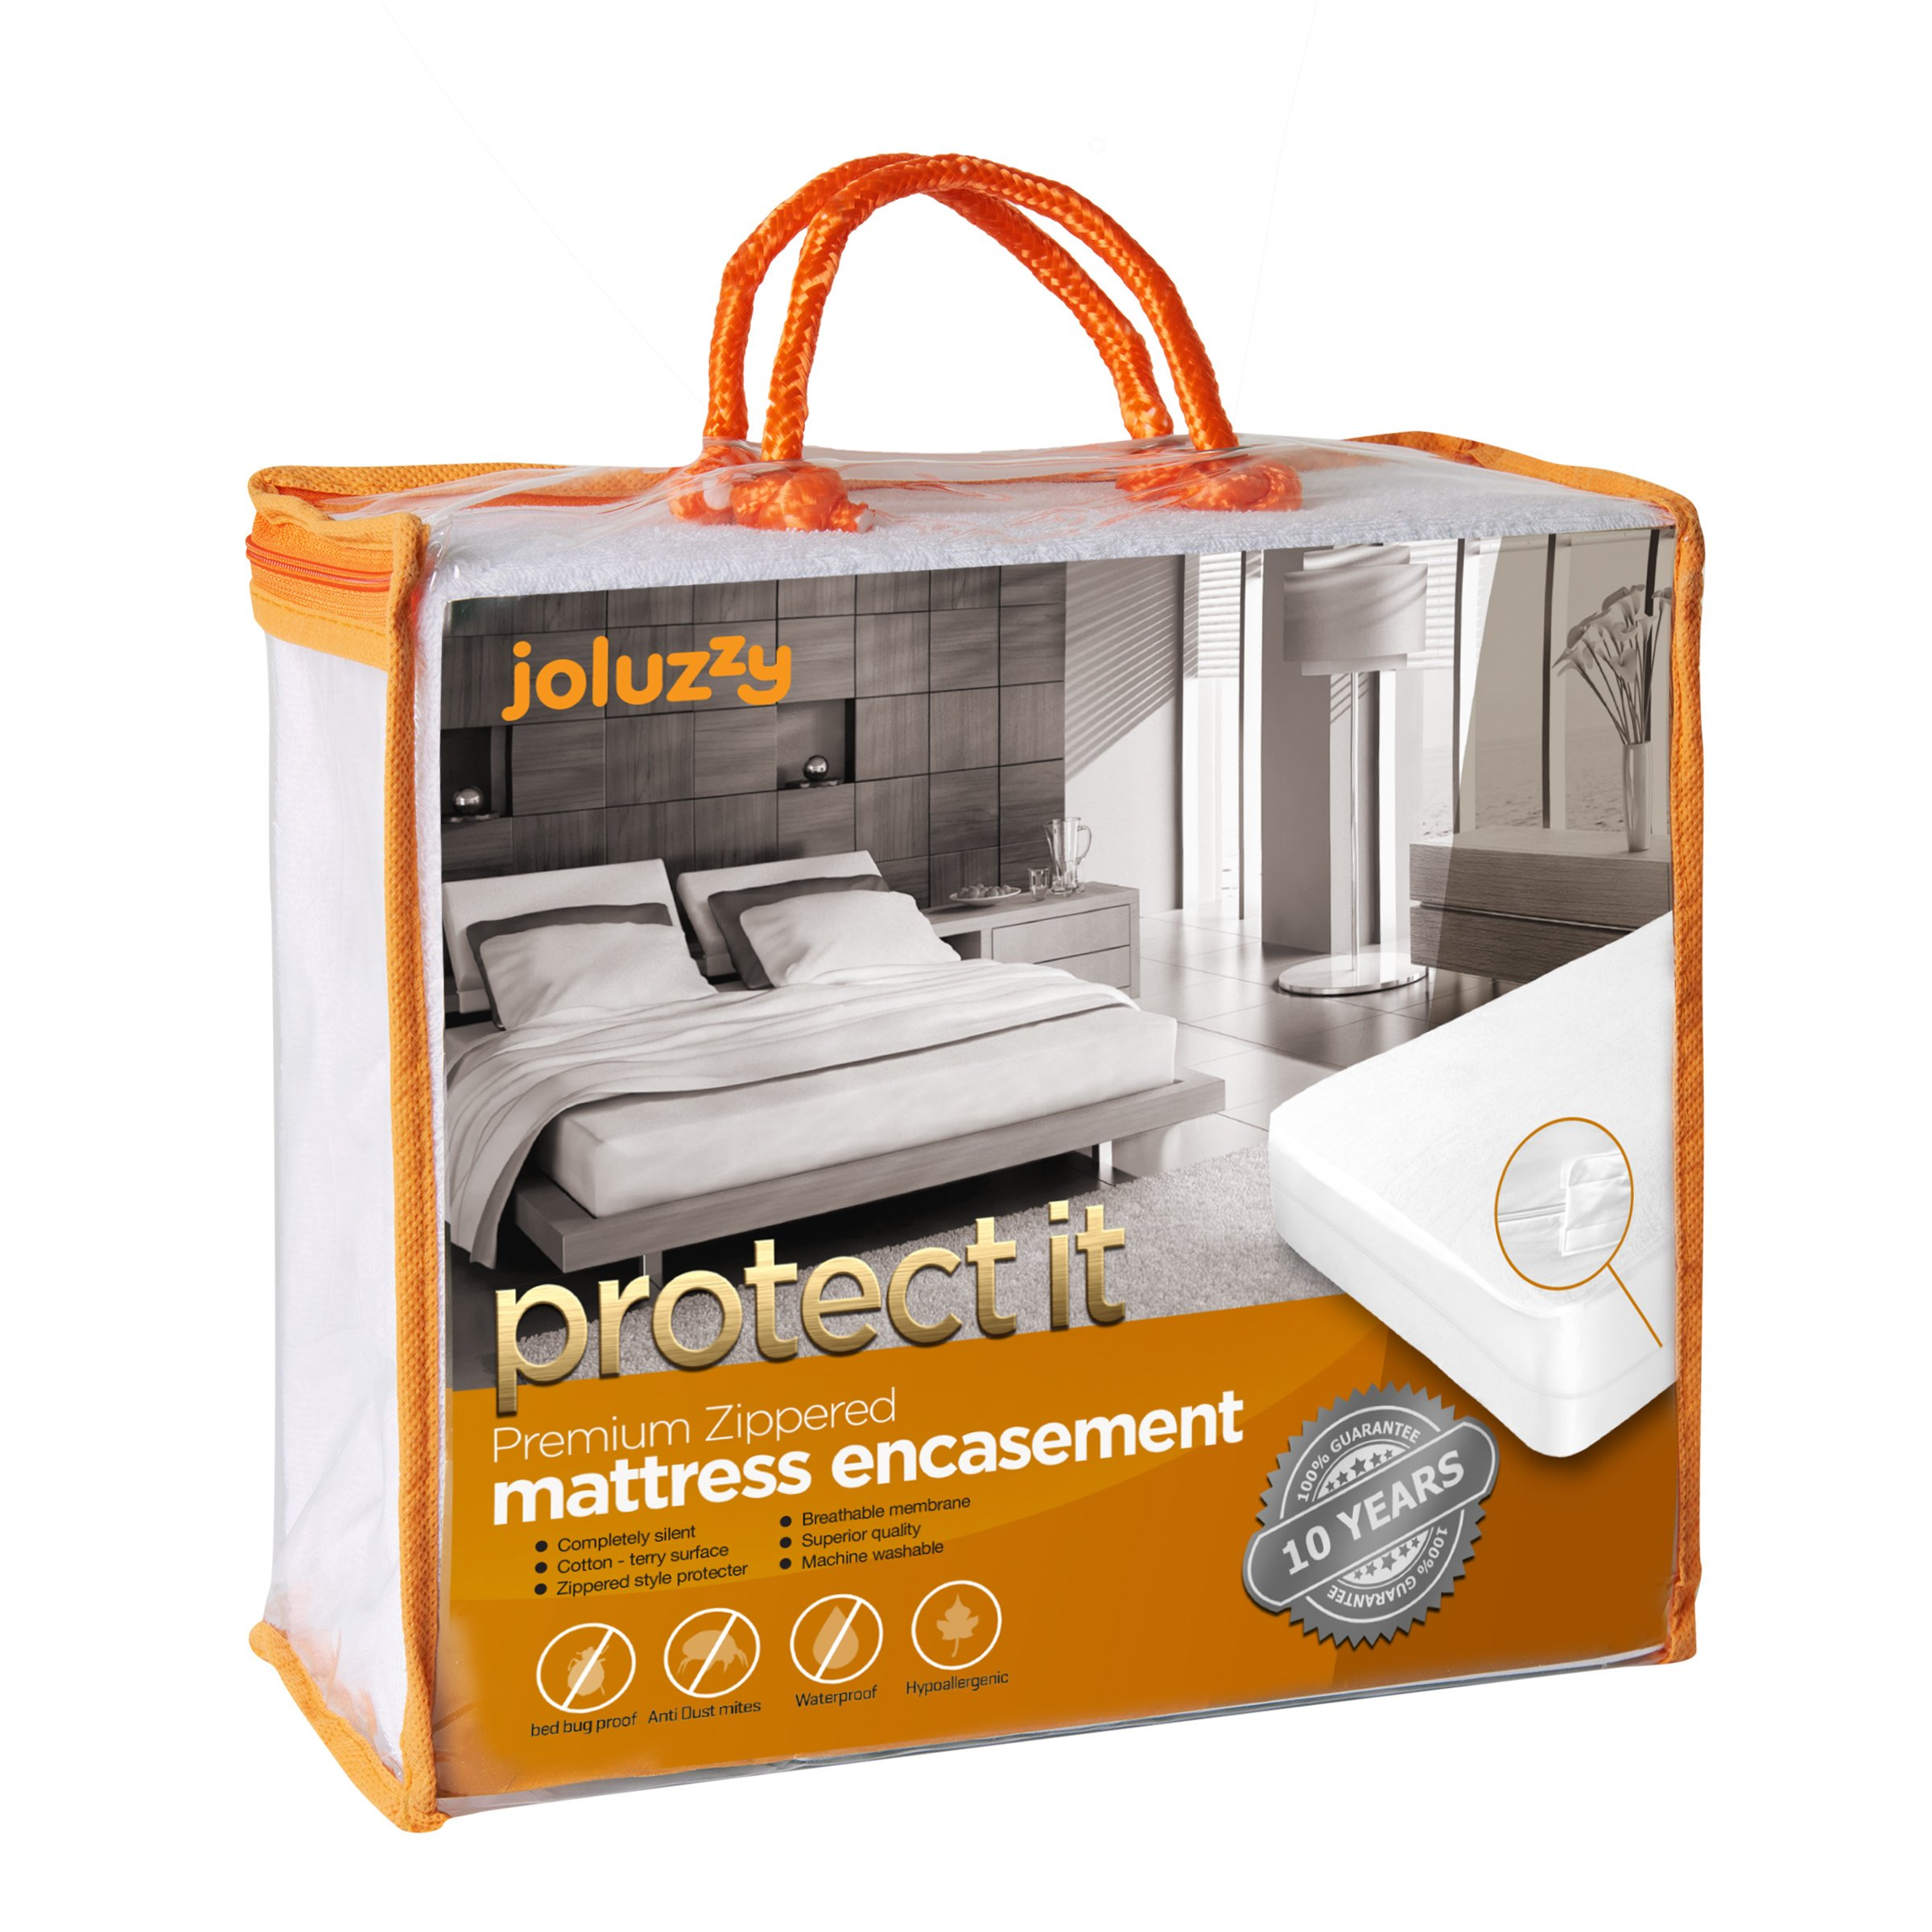 joluzzy Zippered Mattress Protector - 100% Bed Bug Proof/Waterproof Six-Sided Mattress Encasement - Cotton Terry, Breathable, Noiseless, Hypoallergenic, Vinyl-Free, Twin-XL Size by joluzzy (Image #1)